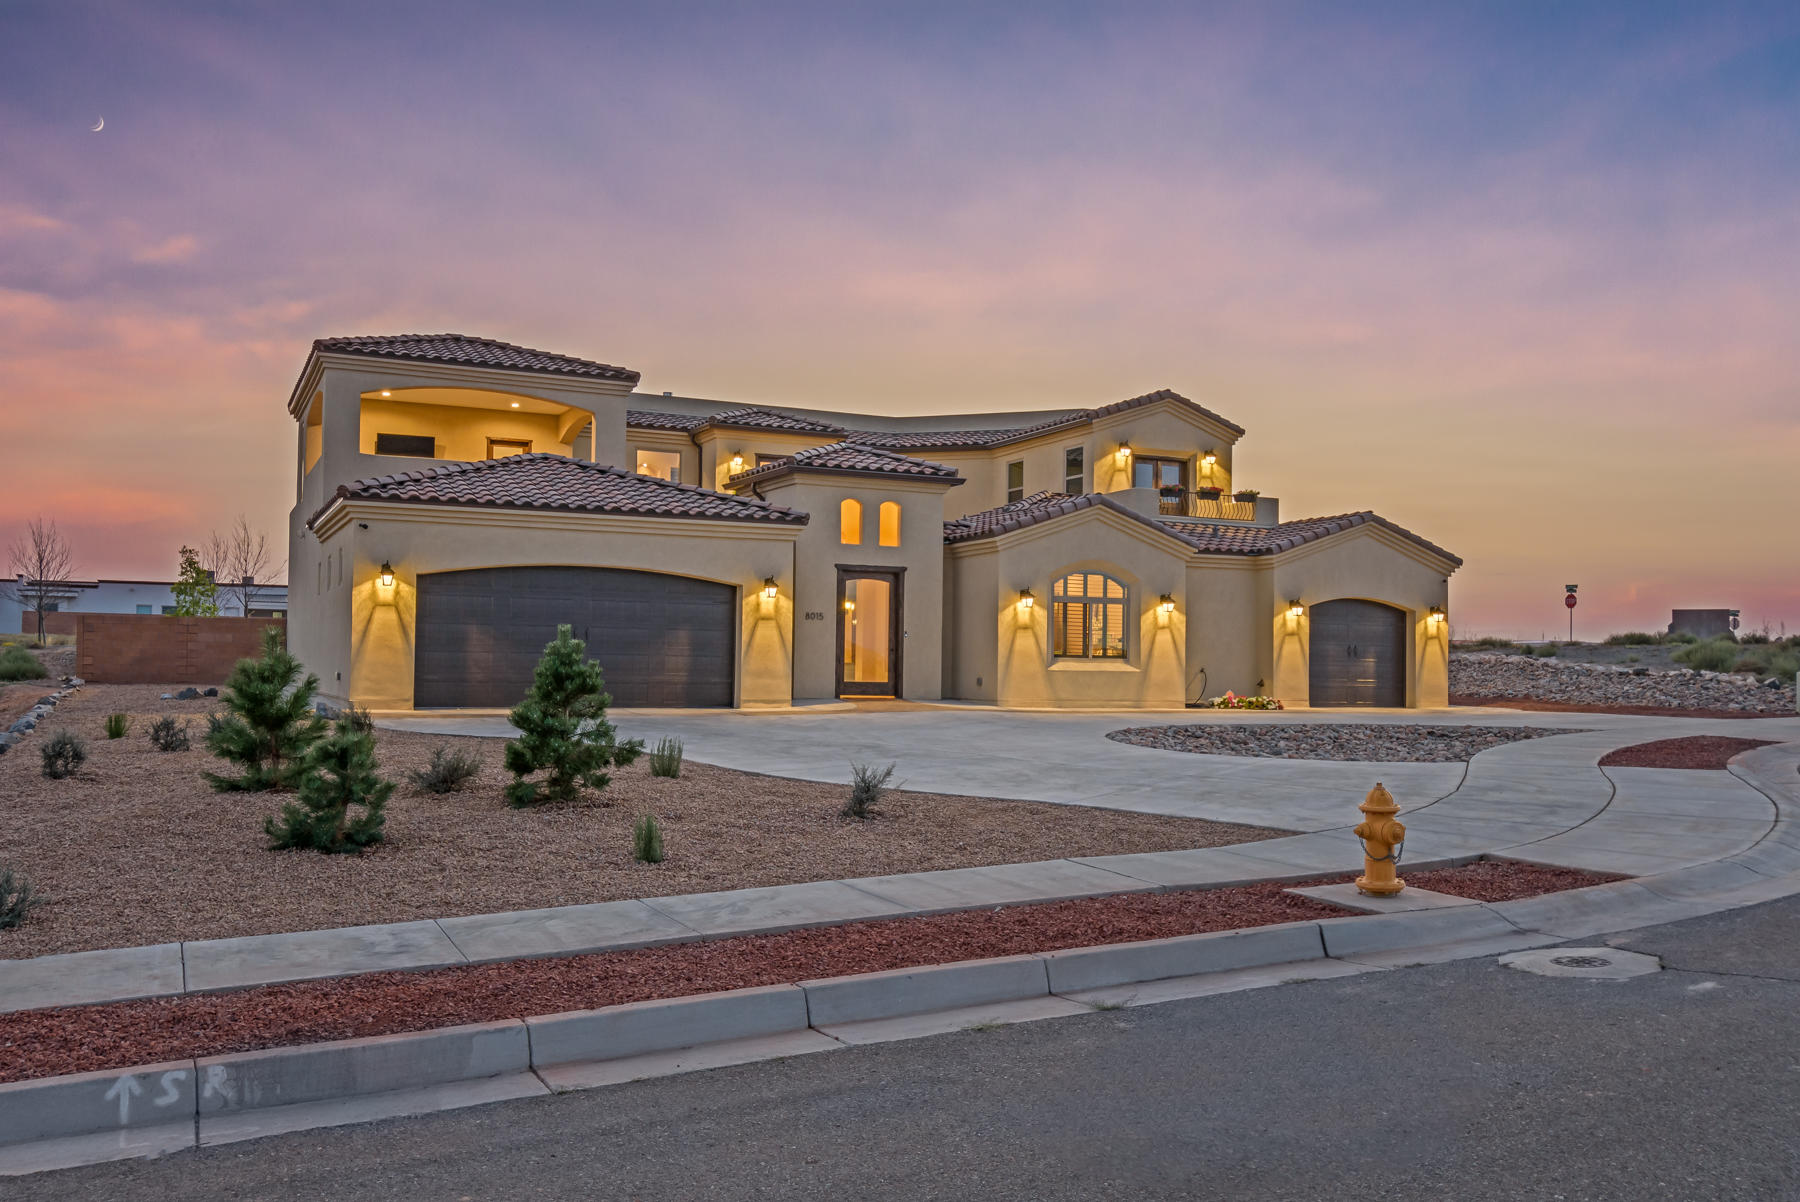 Beautiful Custom home in the desired Petroglyph Estates subdivision. Amazing views from 3 available balconies. 8' Solid Alder wood doors, Granite counters, Cantera Columns, Faux finish paint in entry/kitchen tower. $20k of custom window covers.  $10K whole house water filtration system. 2 tankless water heater-this home is engineered high efficiency with Refrigerated air. MIL suite with separate garage and separate entrance can double as a work from home office.  Private court yard with fountain and flower beds make this the perfect get-away. Jack and Jill bathroom in upper floor-master/laundry room on main. Bronze level green built-it.  Vivant alarm system, Arlo cameras and Sonos surround sound system.  Balloon fiesta and views from 3 directions.  You need to see this beautiful home.